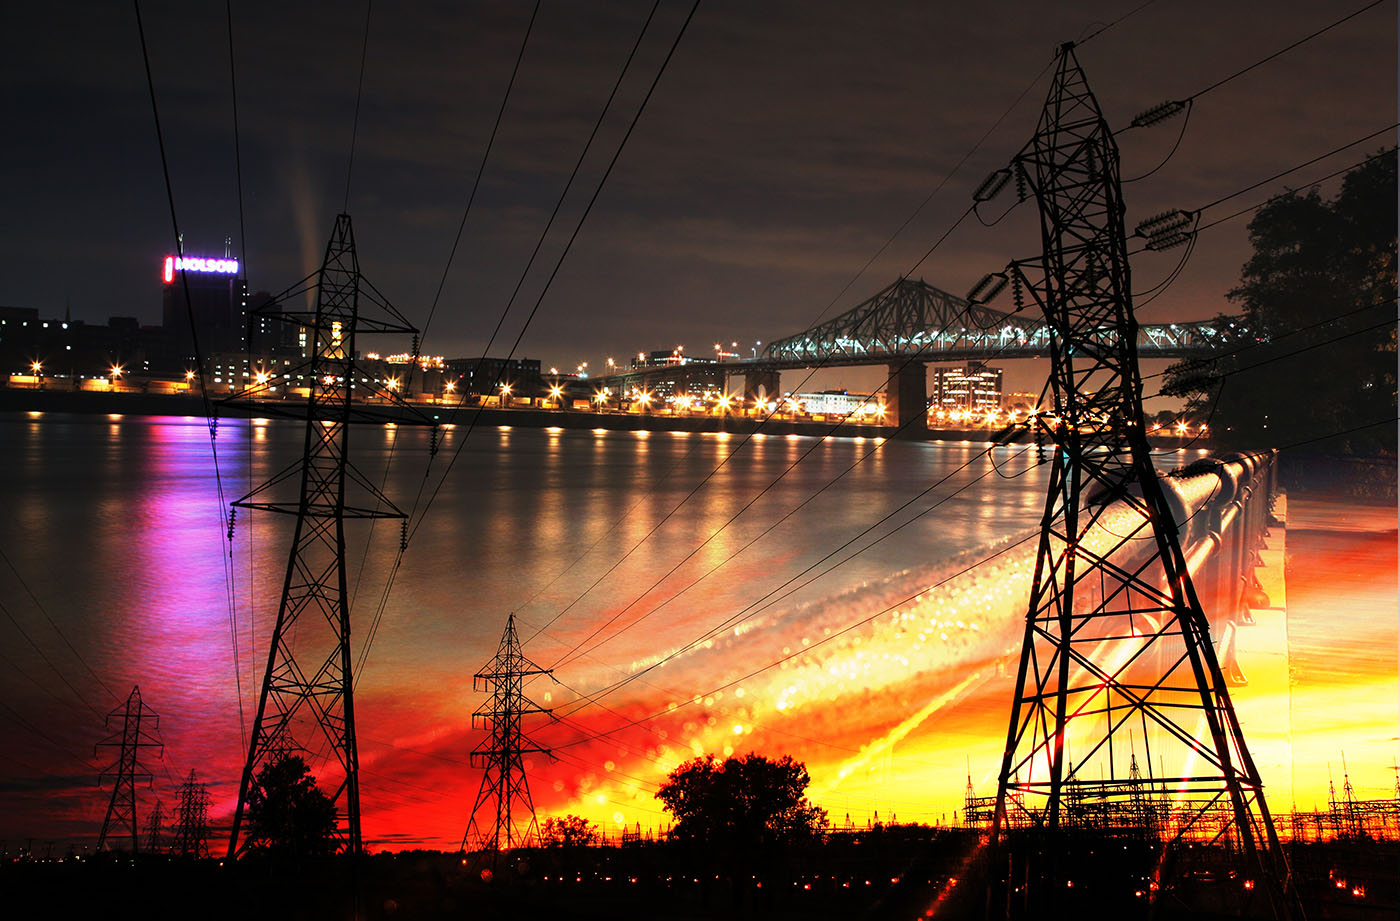 Urban Electrification - Stock Photos, Pictures & Images